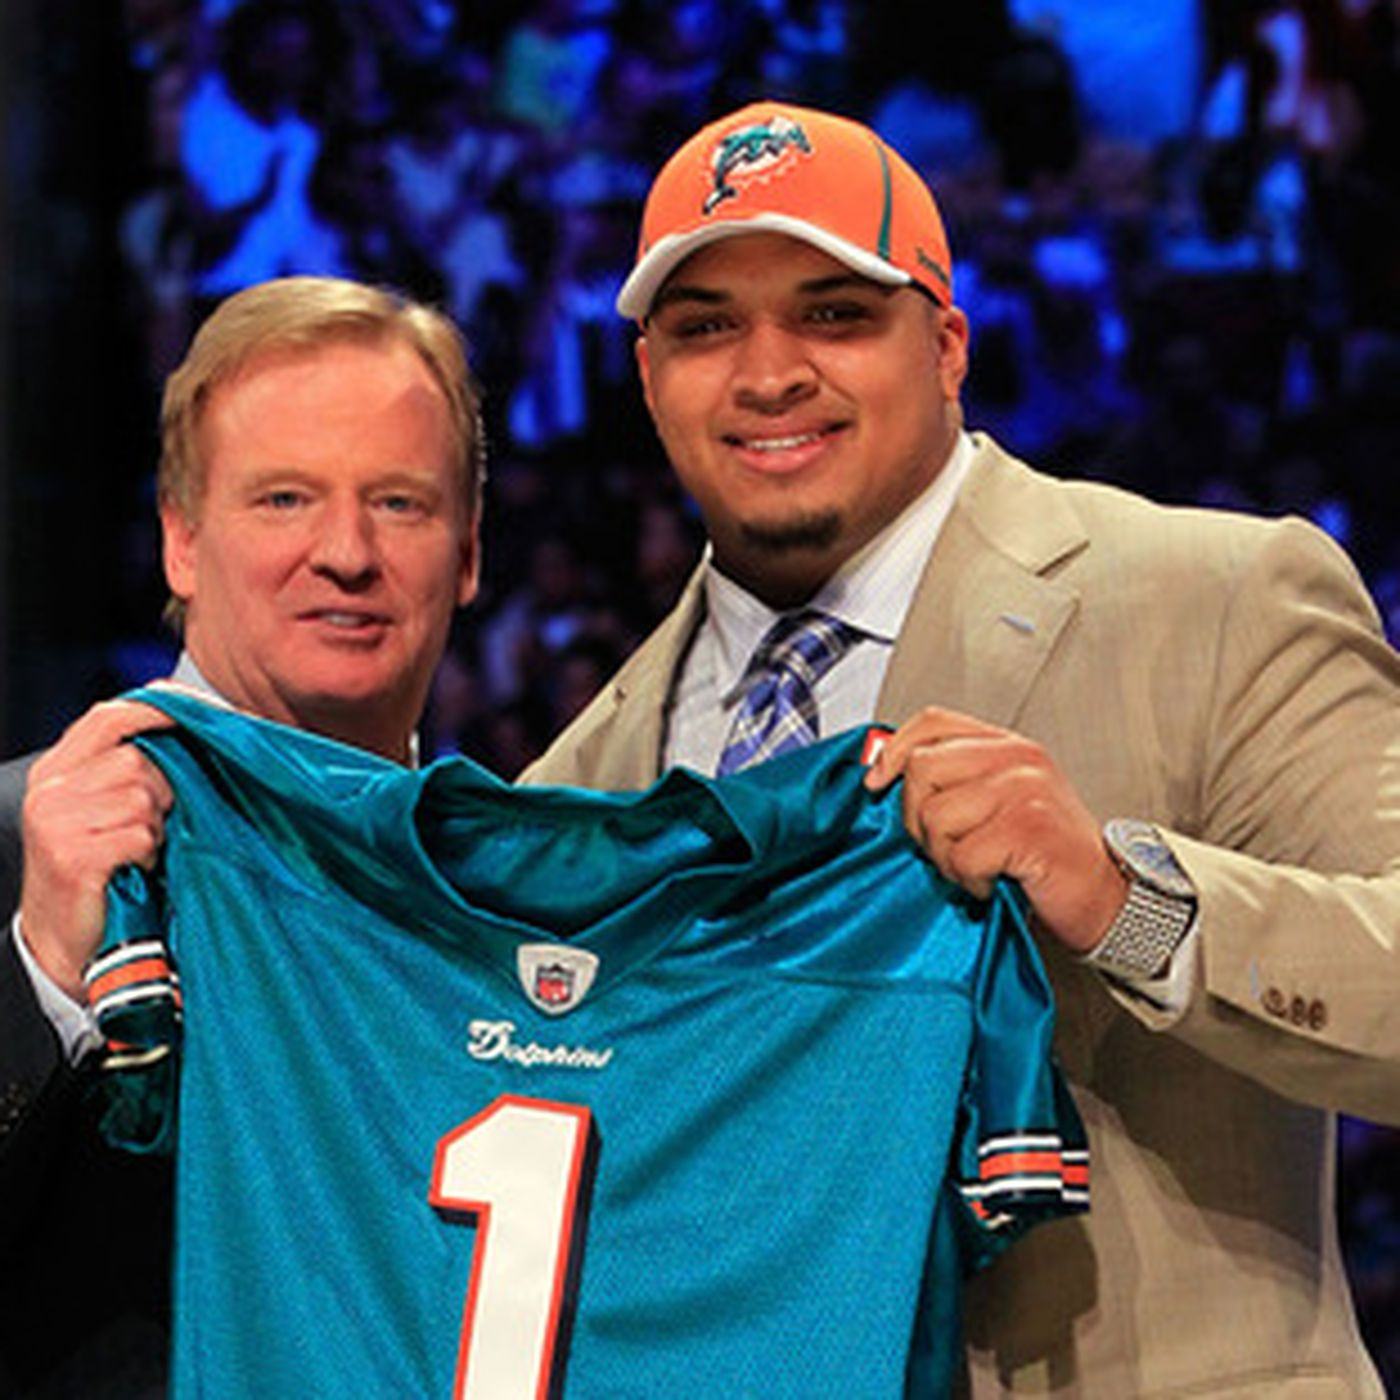 e2fa10f4ee5 A look at the 2014 Miami Dolphins draft hat and others over the years